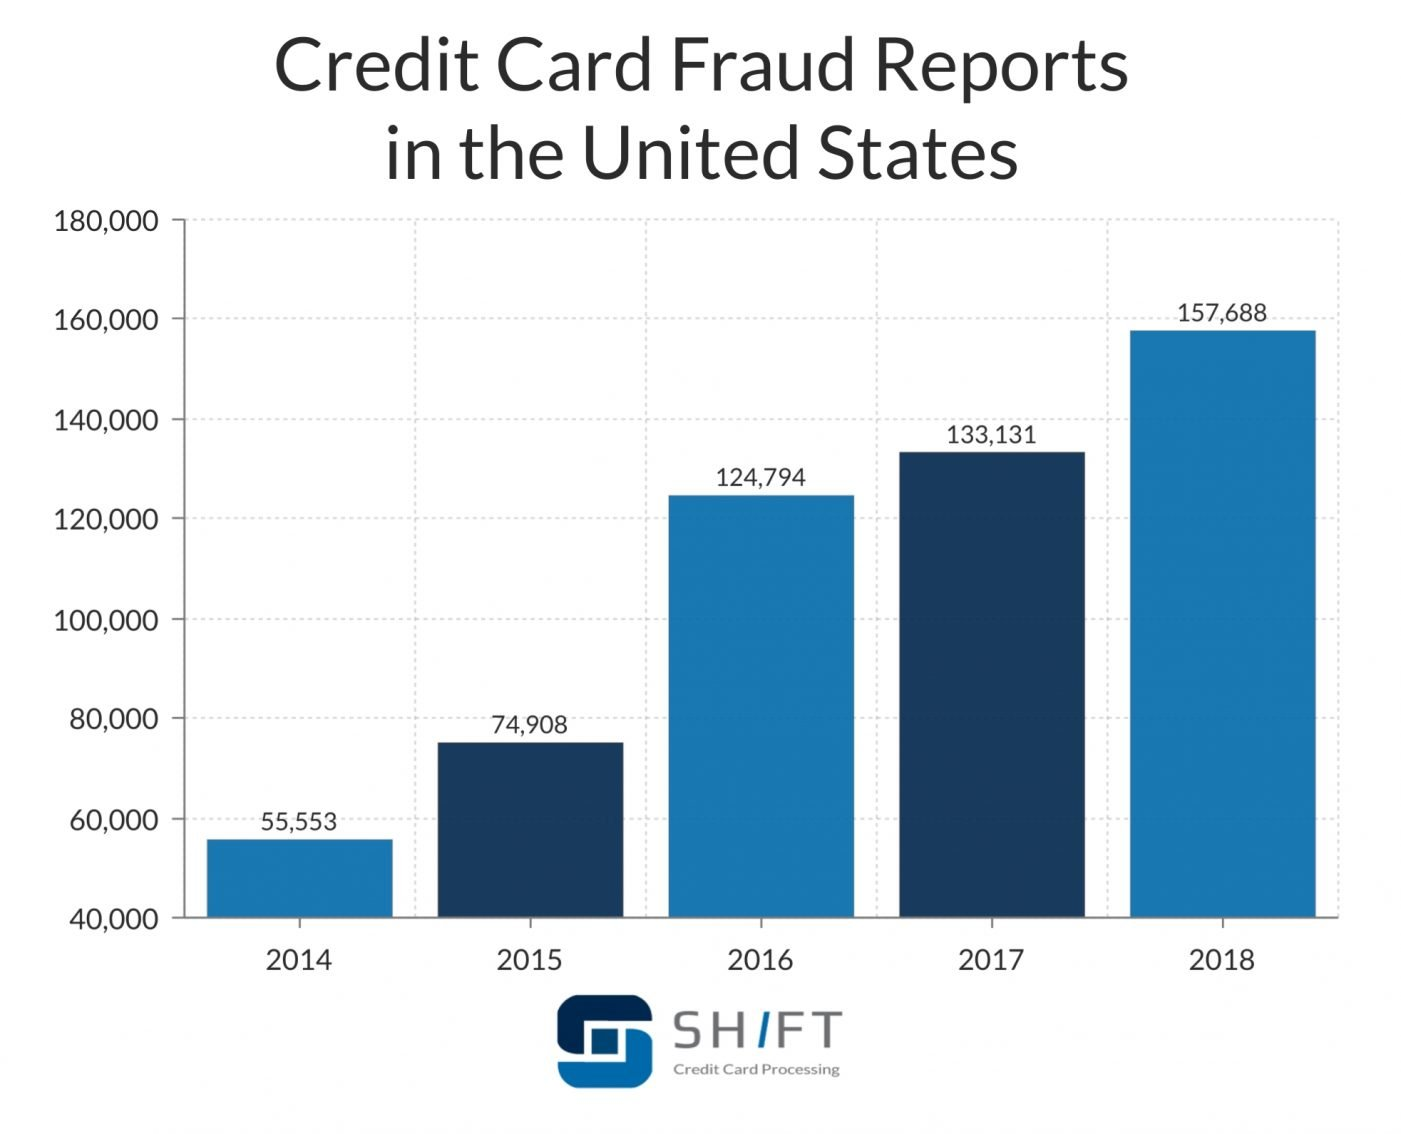 bar graph showing credit card fraud reports in the US